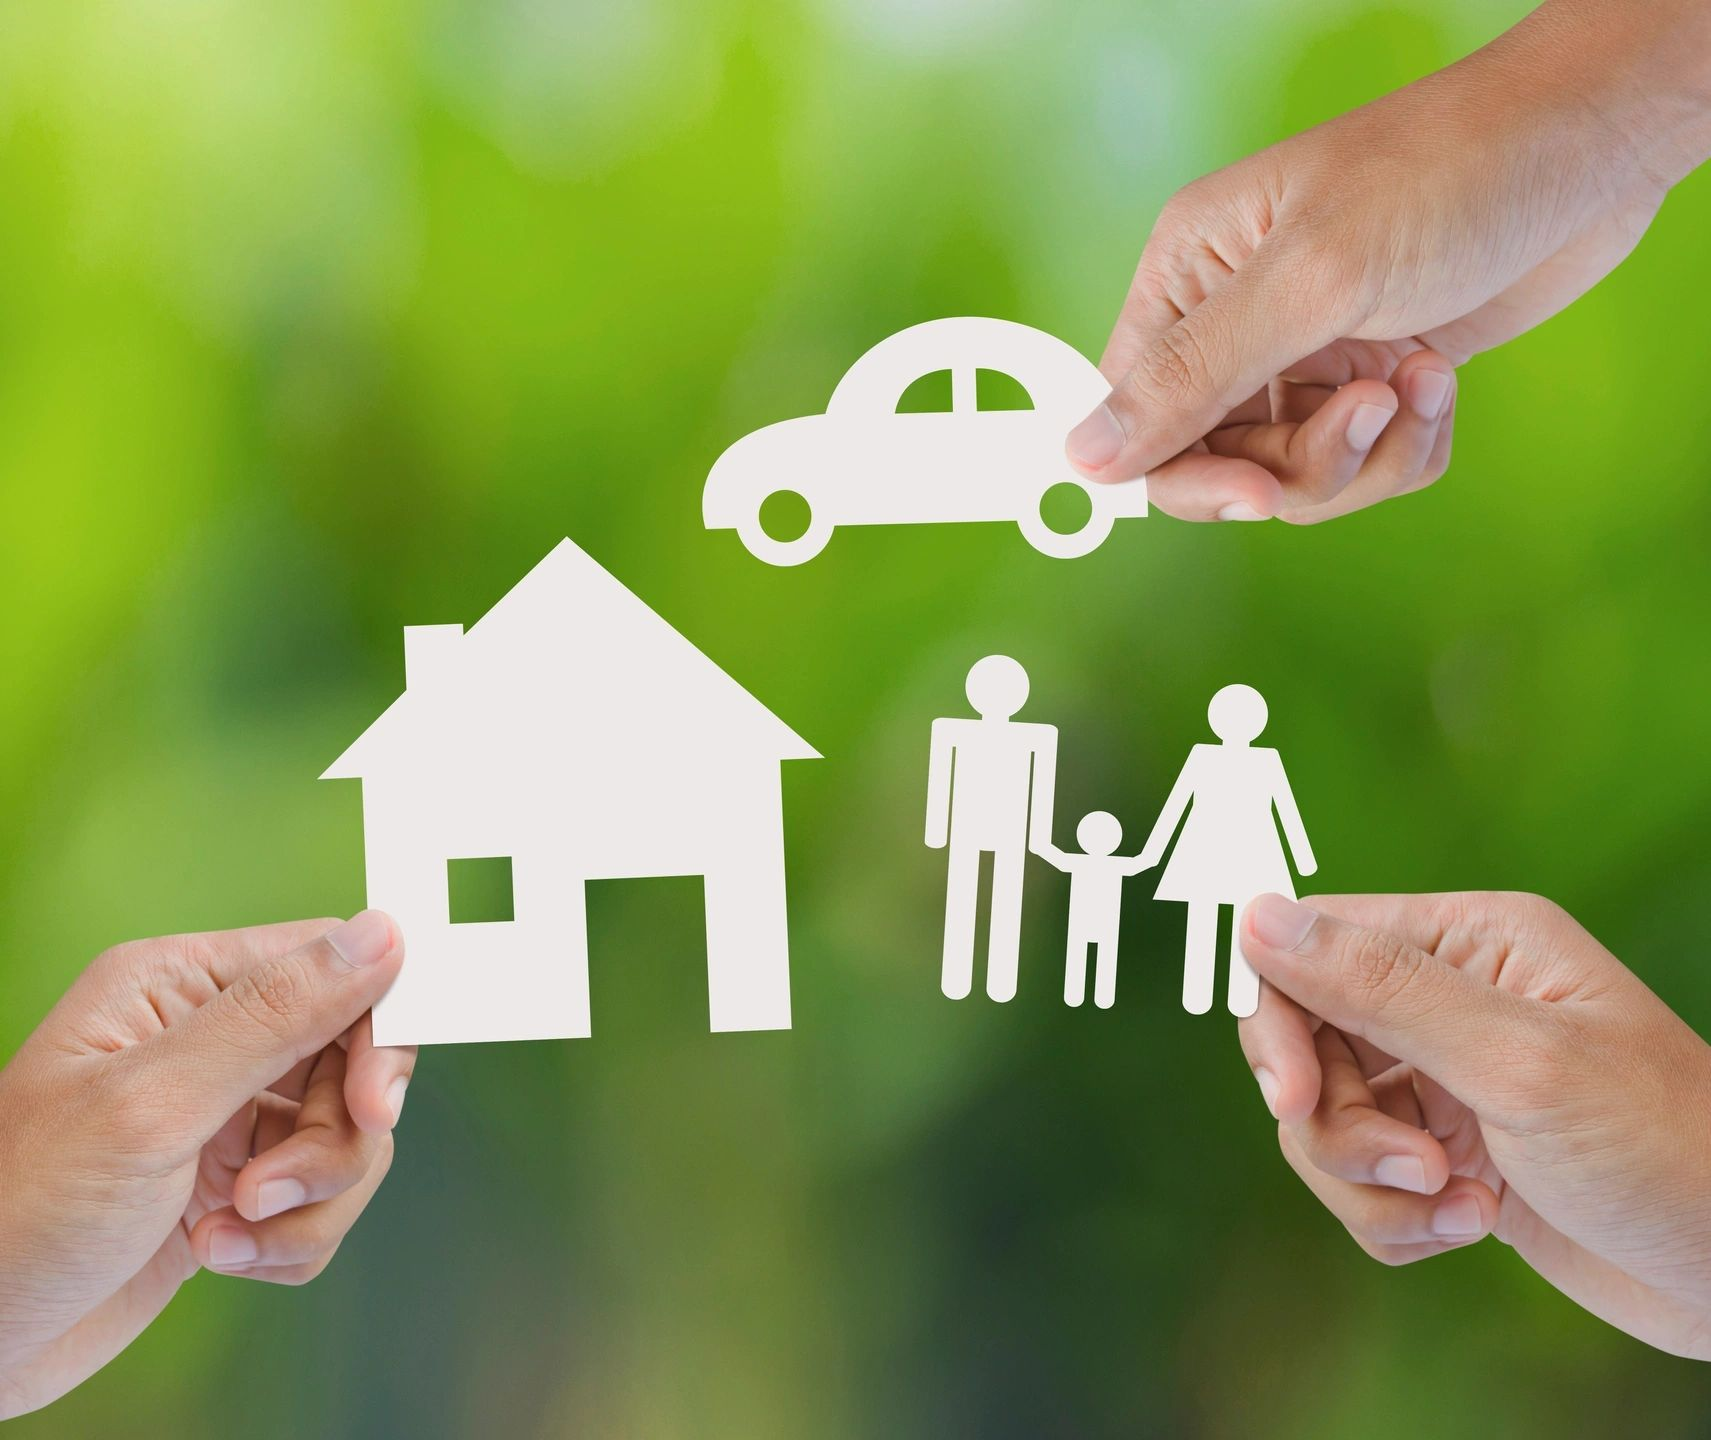 Mike Hammer Allstate Insurance serves all of your Automobile, Homeowners and Life Insurance needs.